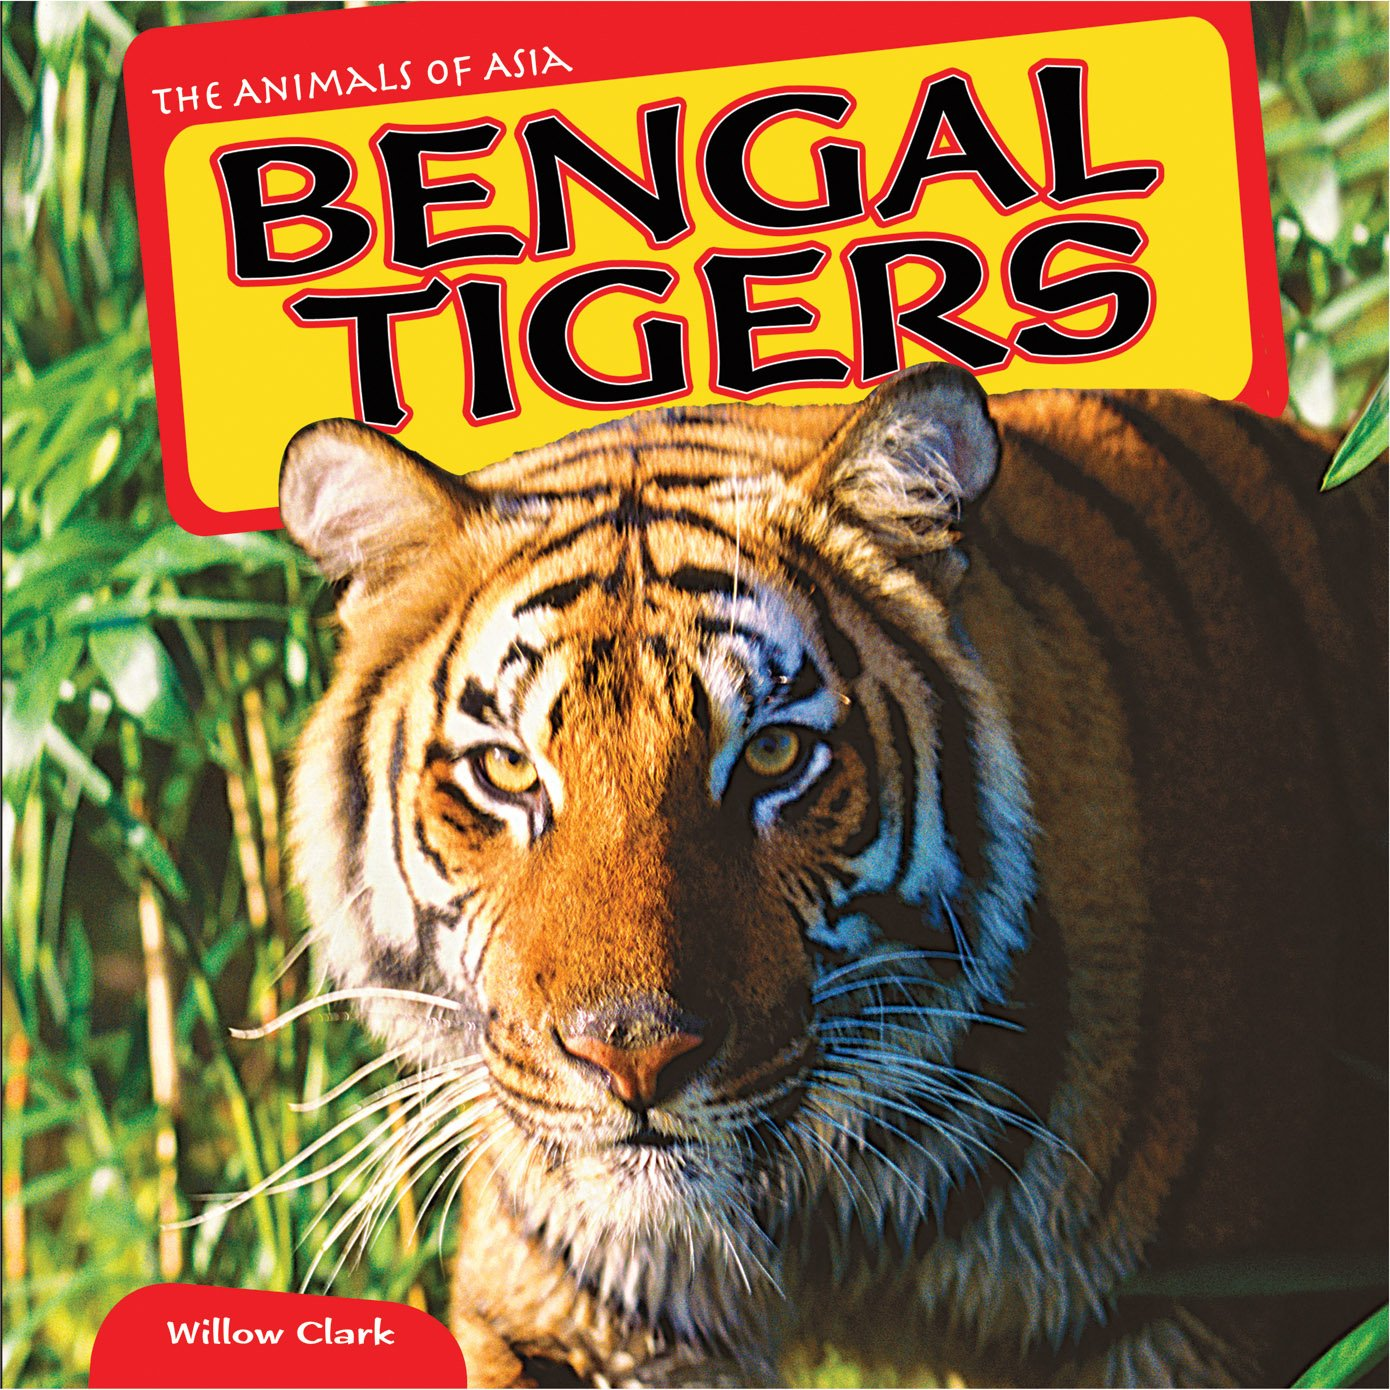 Bengal Tigers (The Animals of Asia)